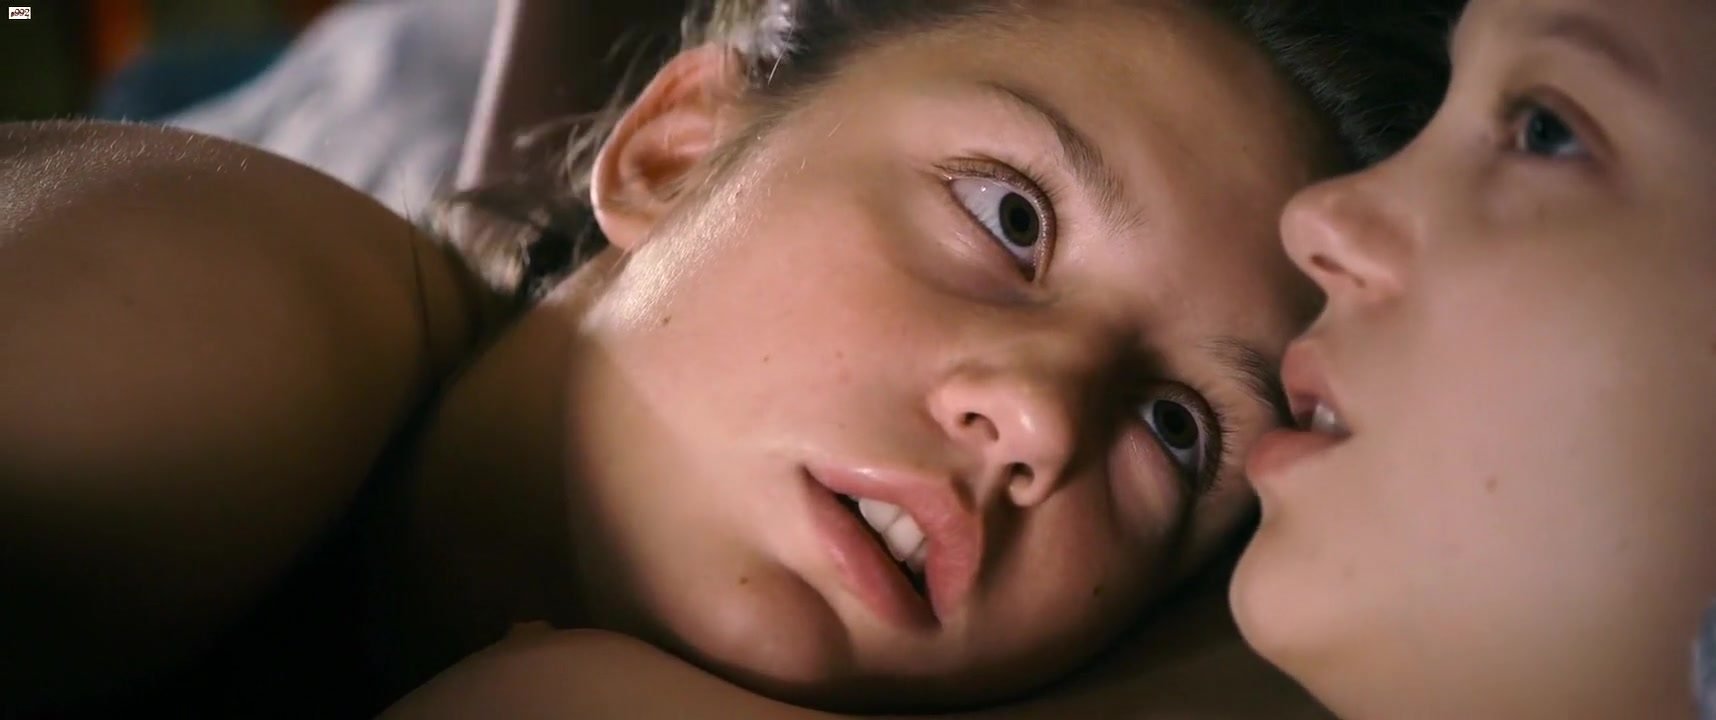 Unsimulated sex in film nude — pic 9